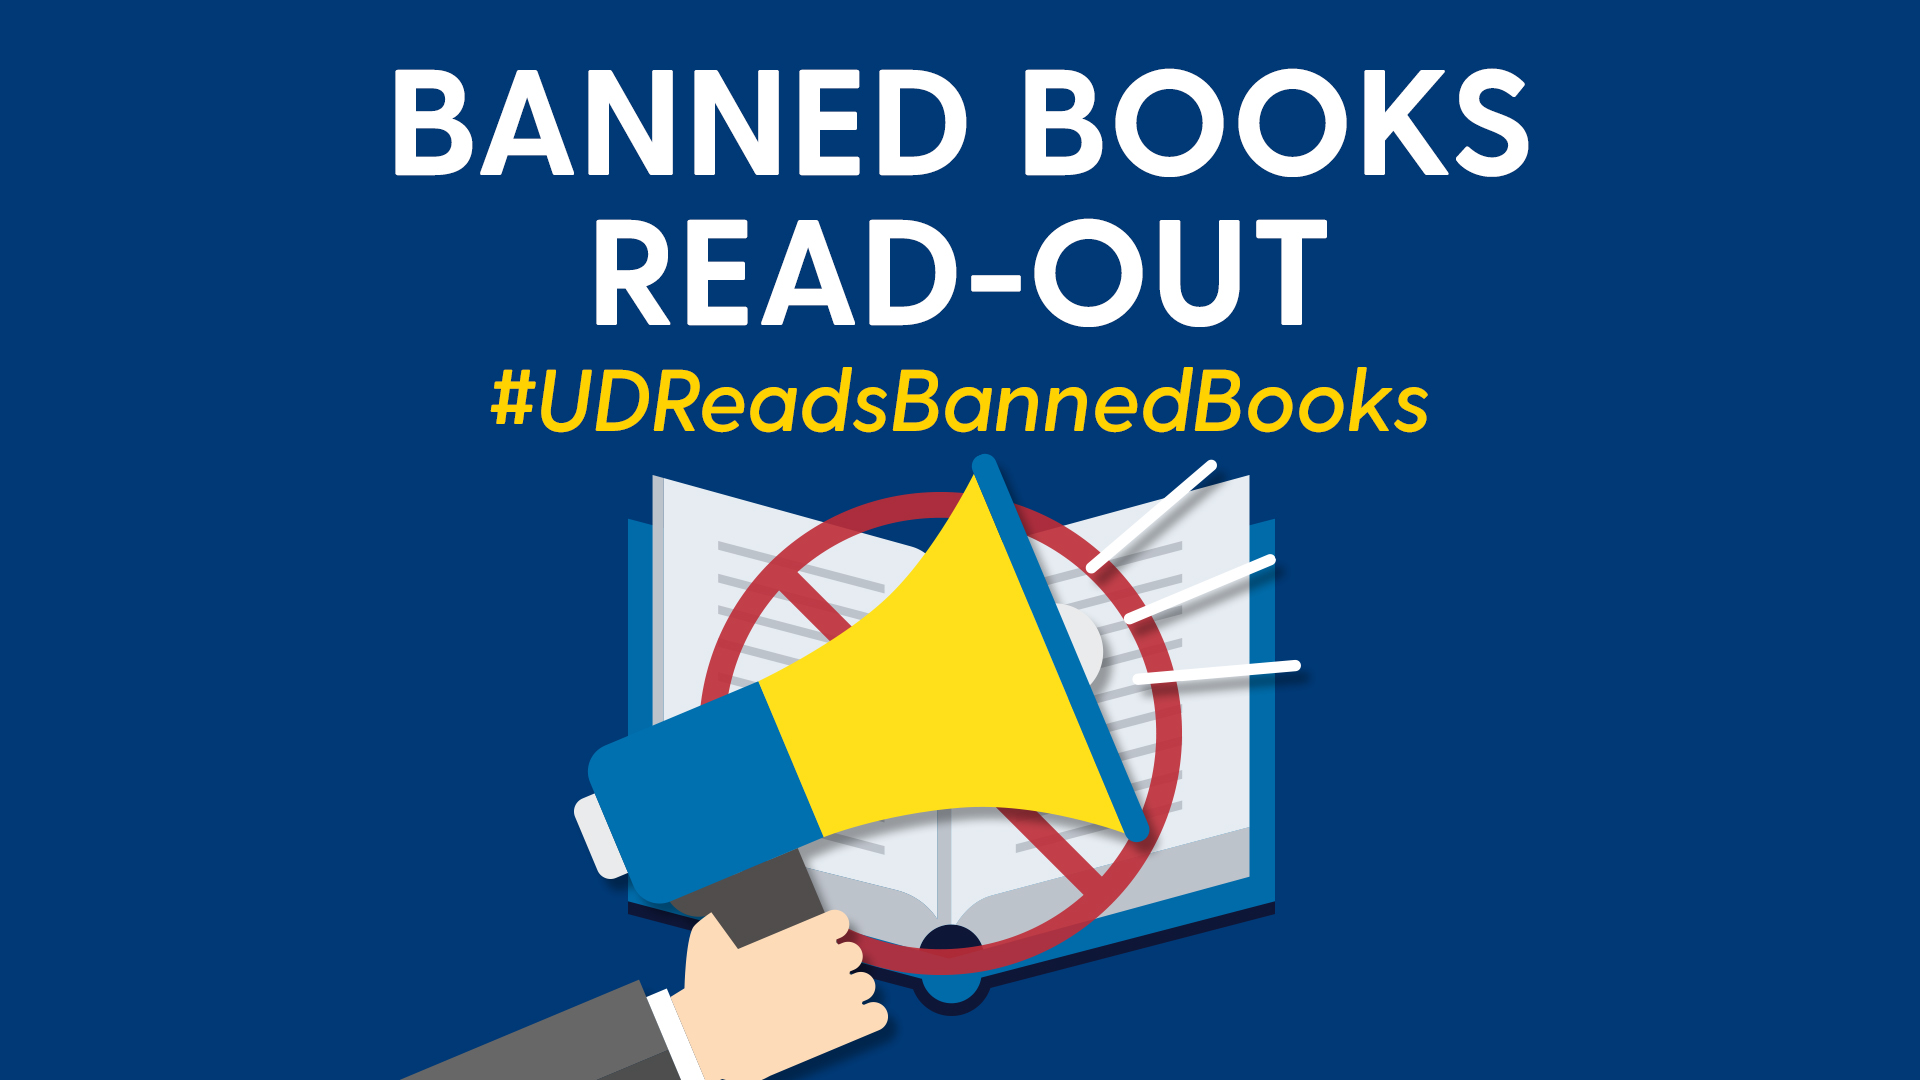 Promotional Image for Banned Books Read-Out